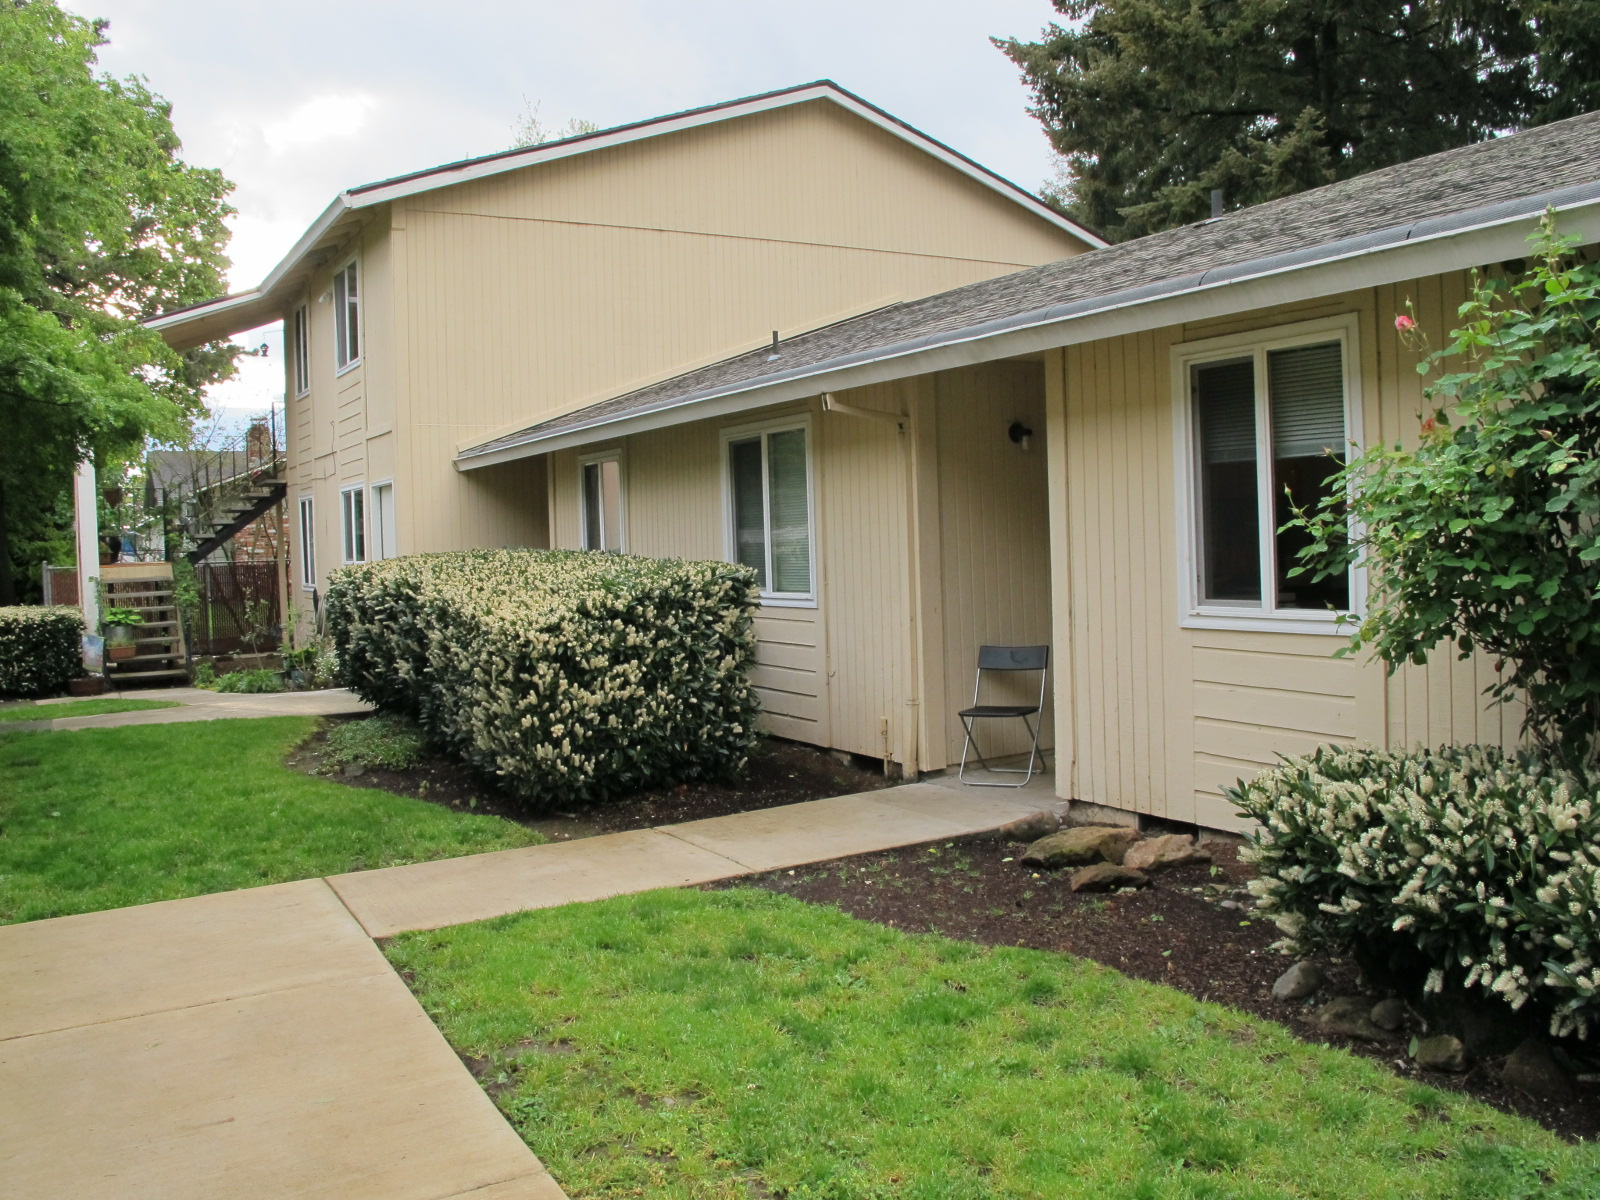 738 SE 148th Ave  8 unit multifamily  $995,000 SOLD